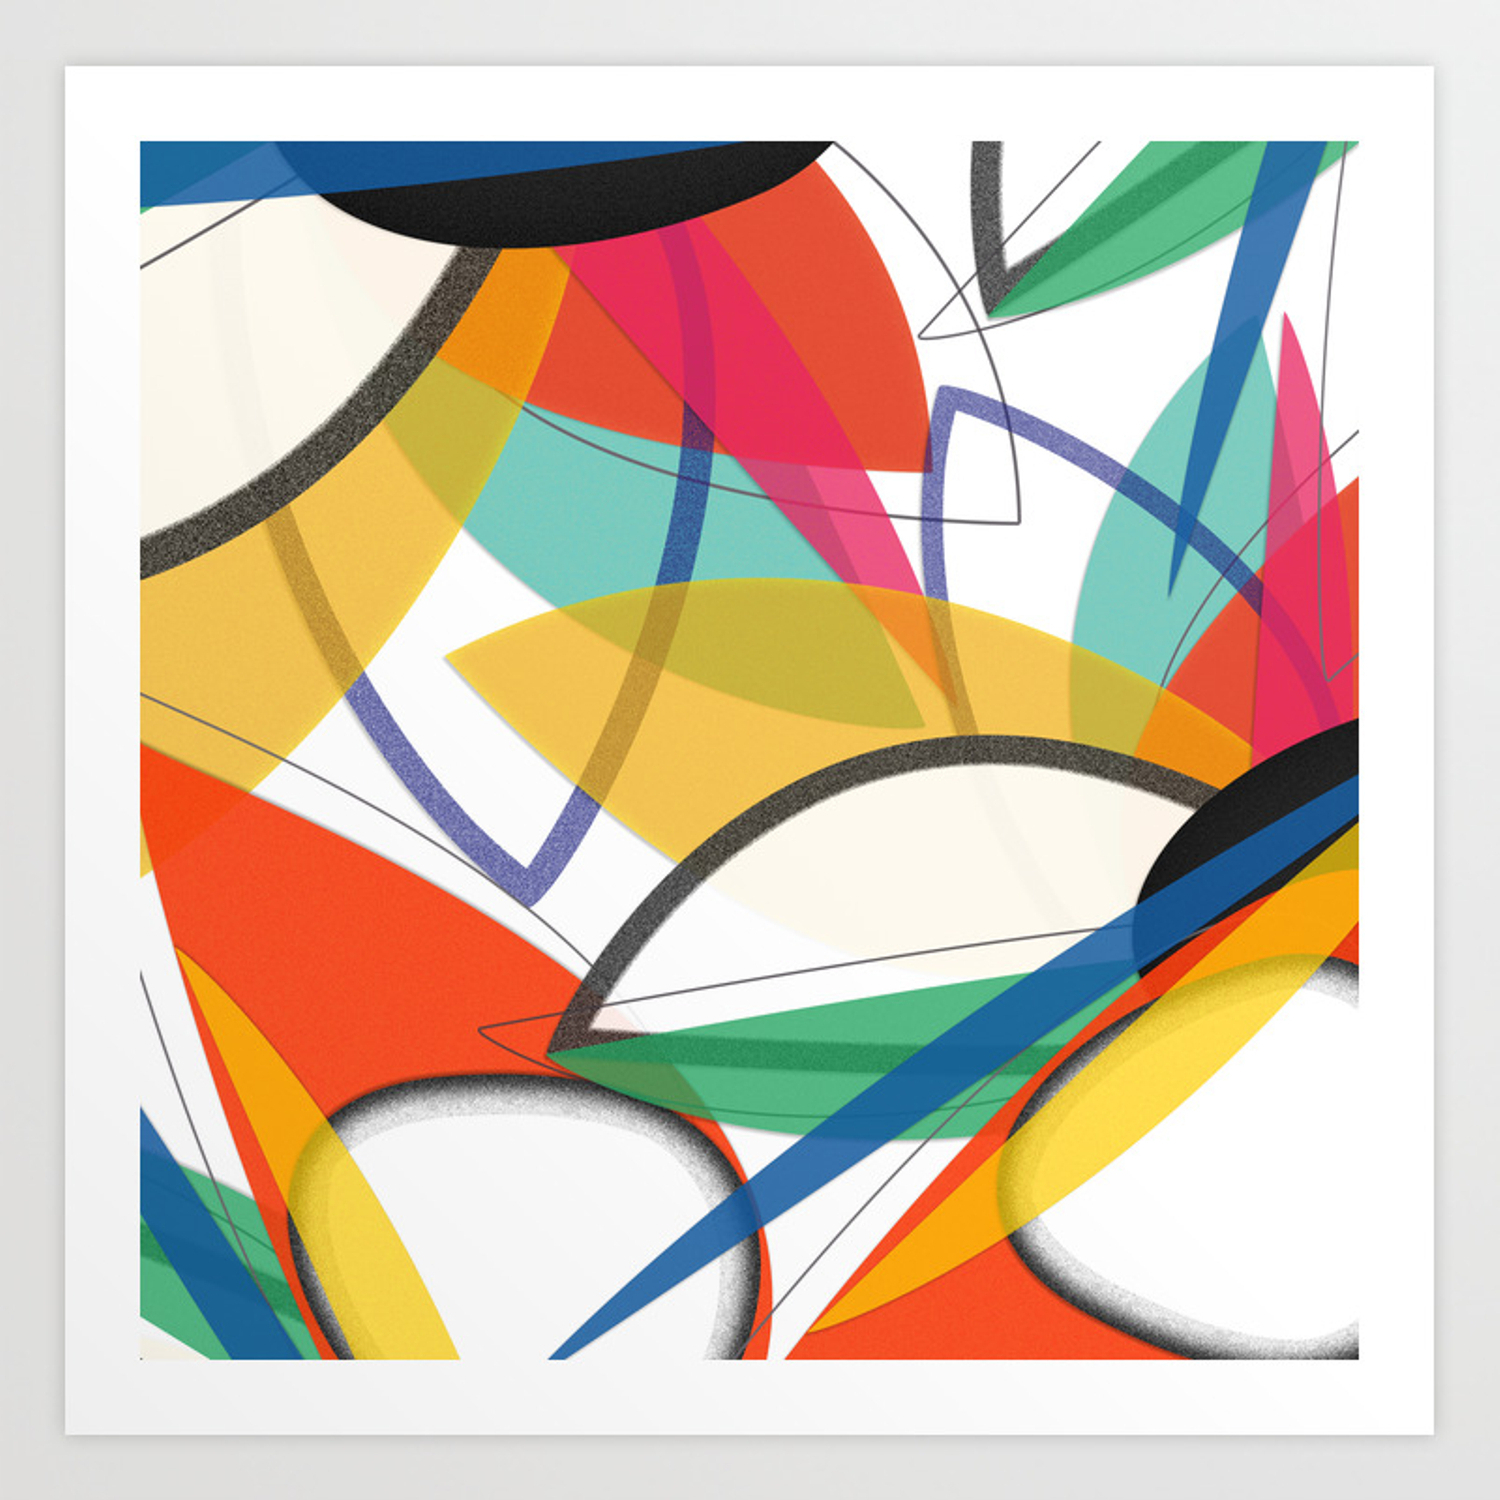 Contemporary Composition Of Multicolored Abstract Flowers, Superposition Of  Geometric Shapes Art Print Throughout Multi Colored Geometric Shapes Credenzas (View 2 of 20)